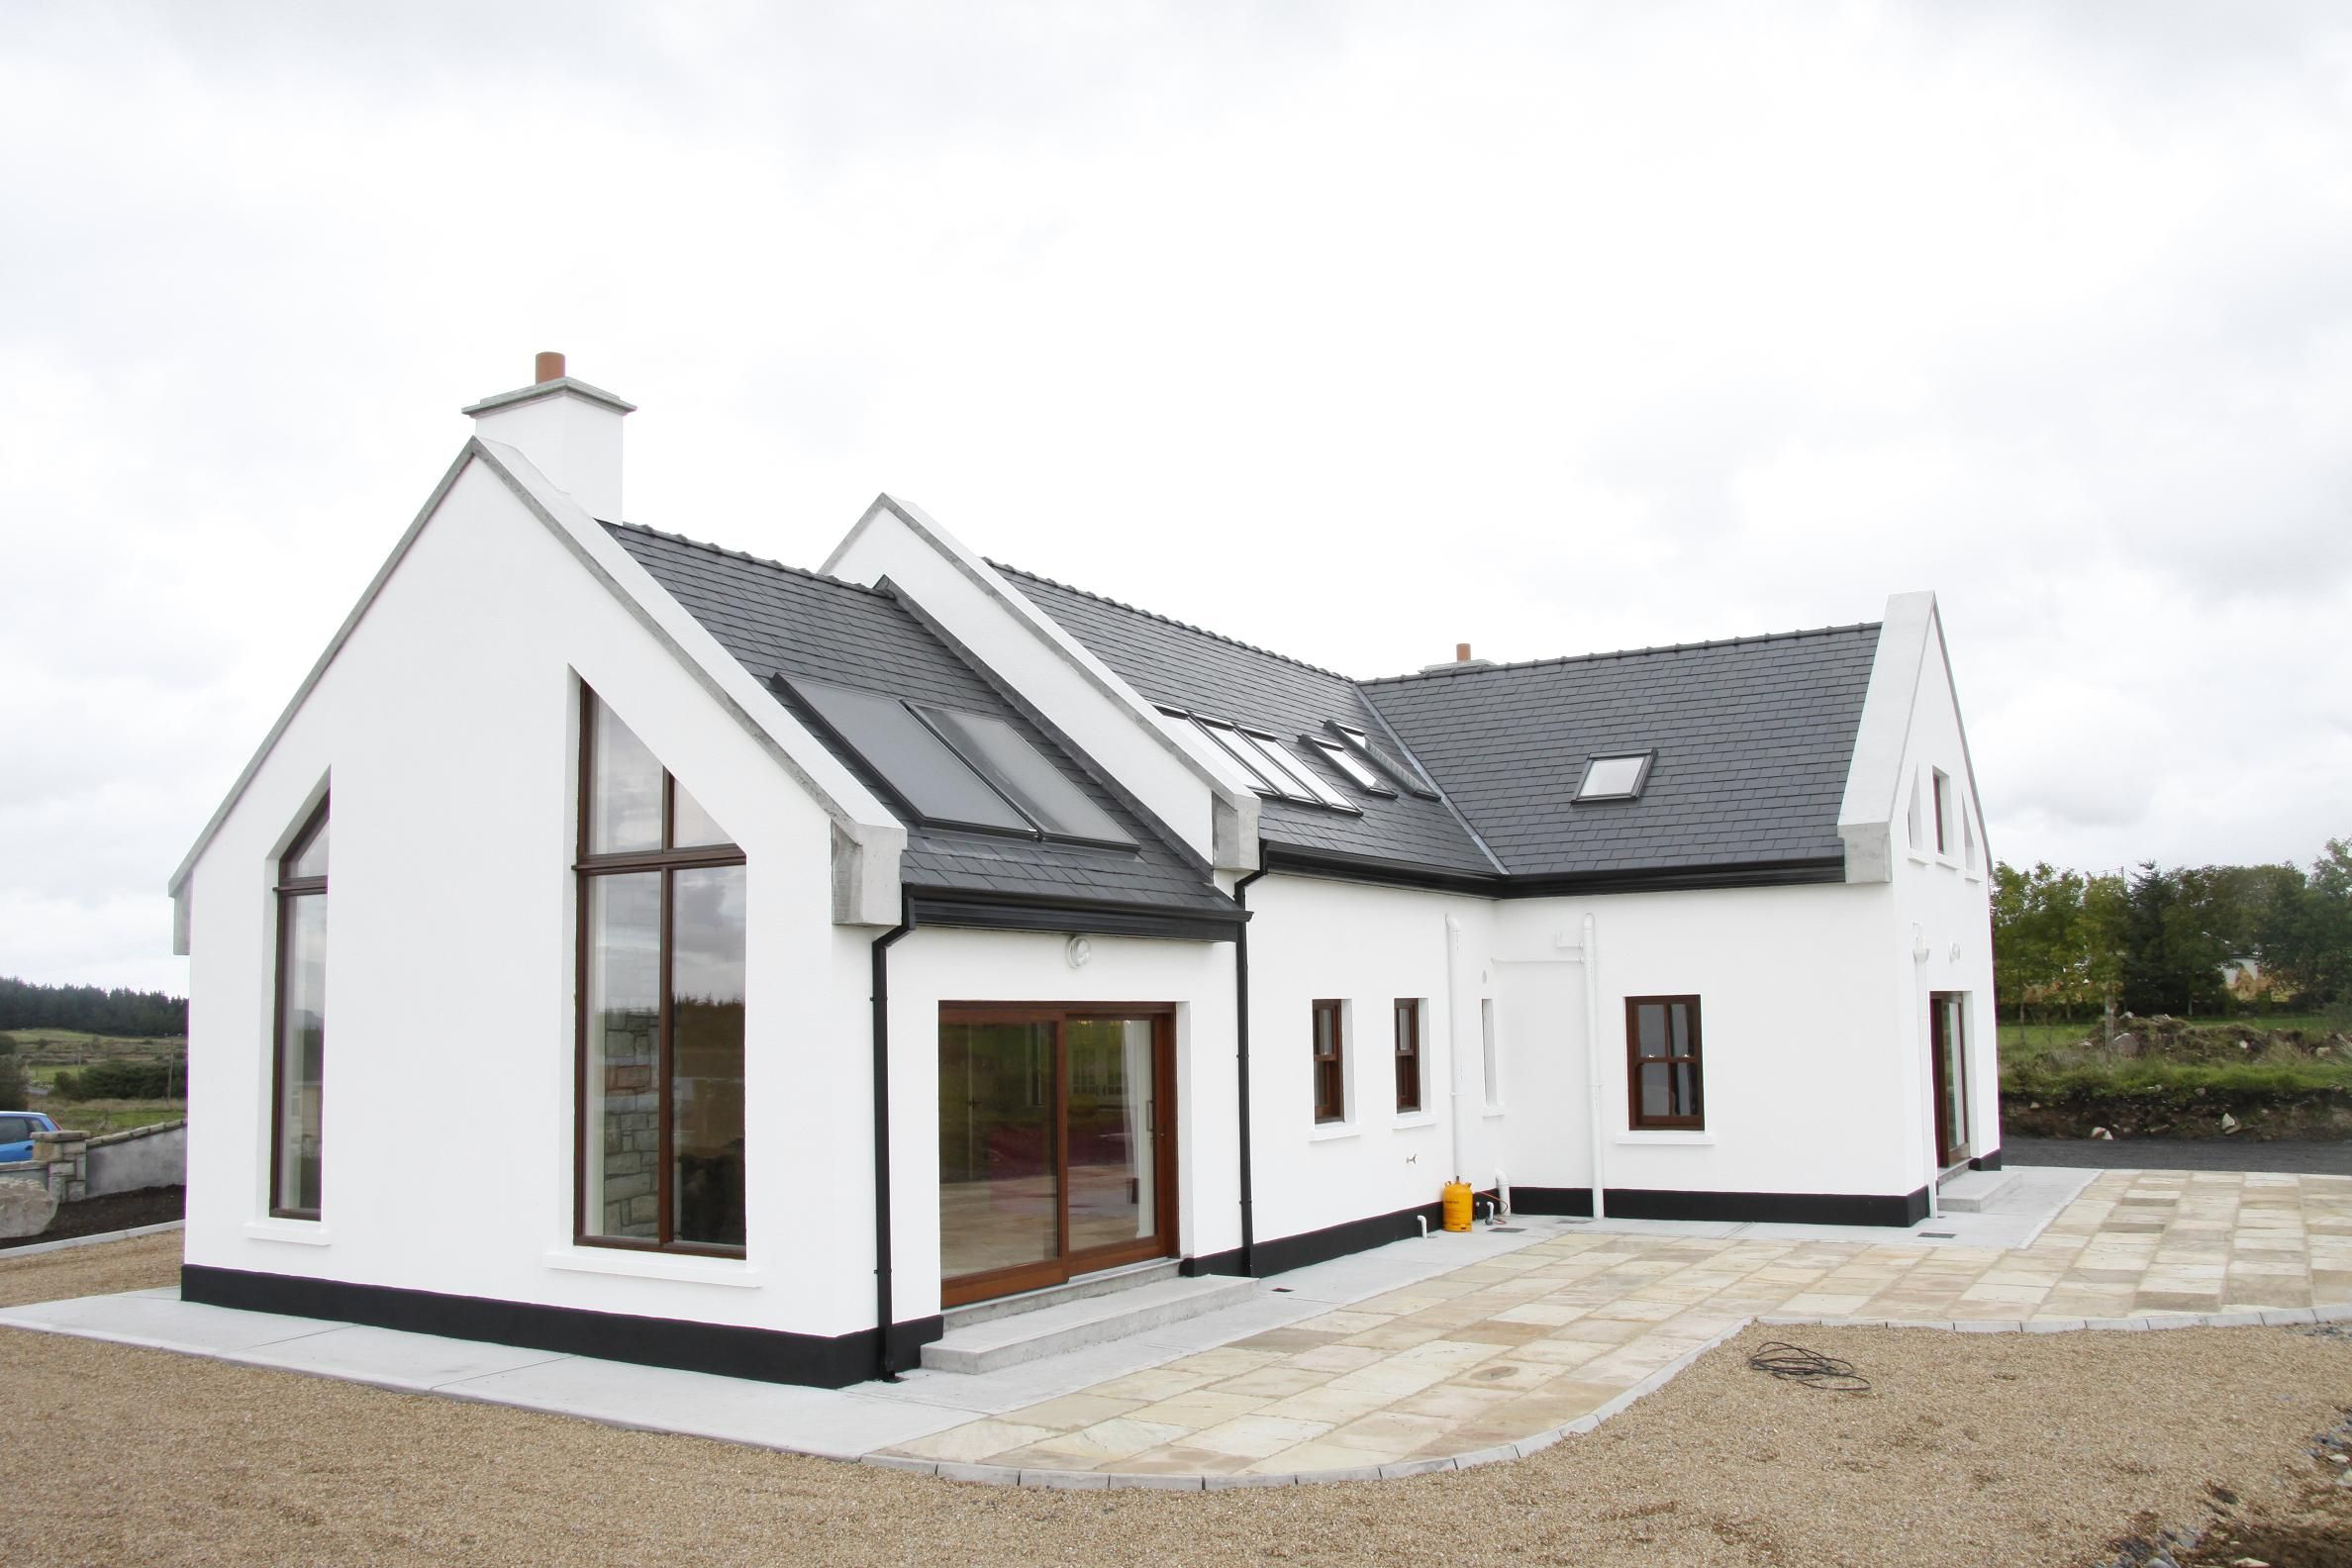 Exterior bungalow house ireland google search house for Traditional and modern houses